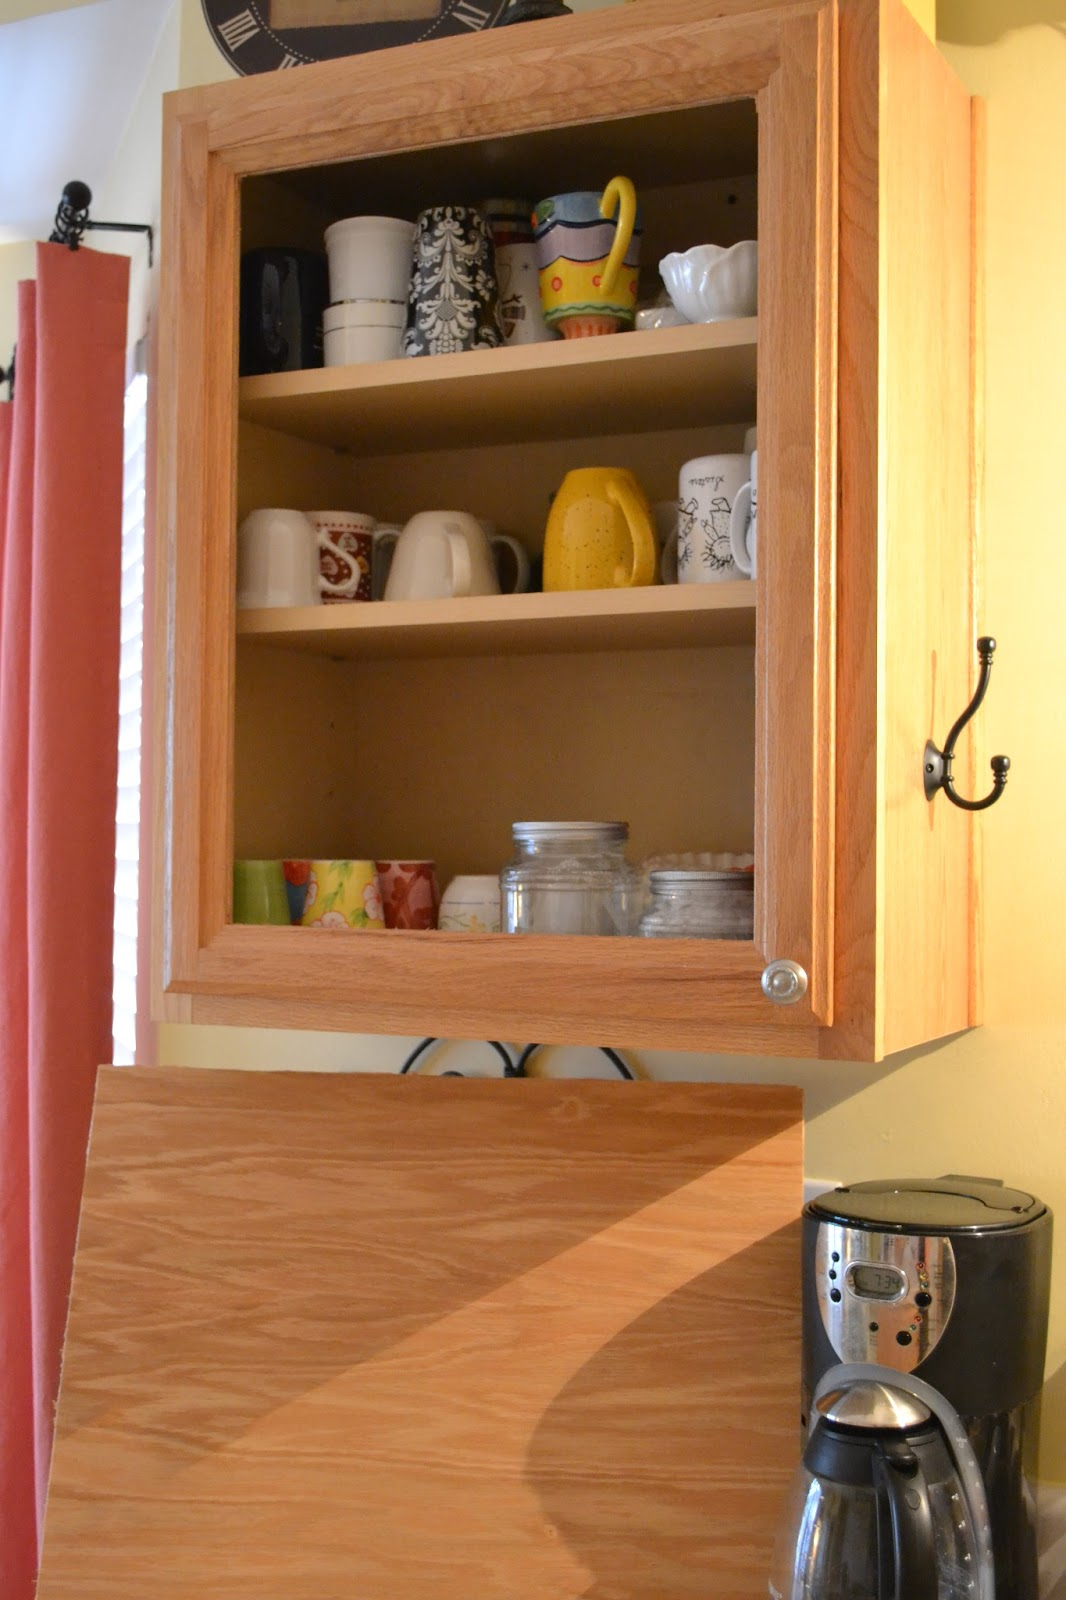 dwell by cheryl open kitchen cabinets